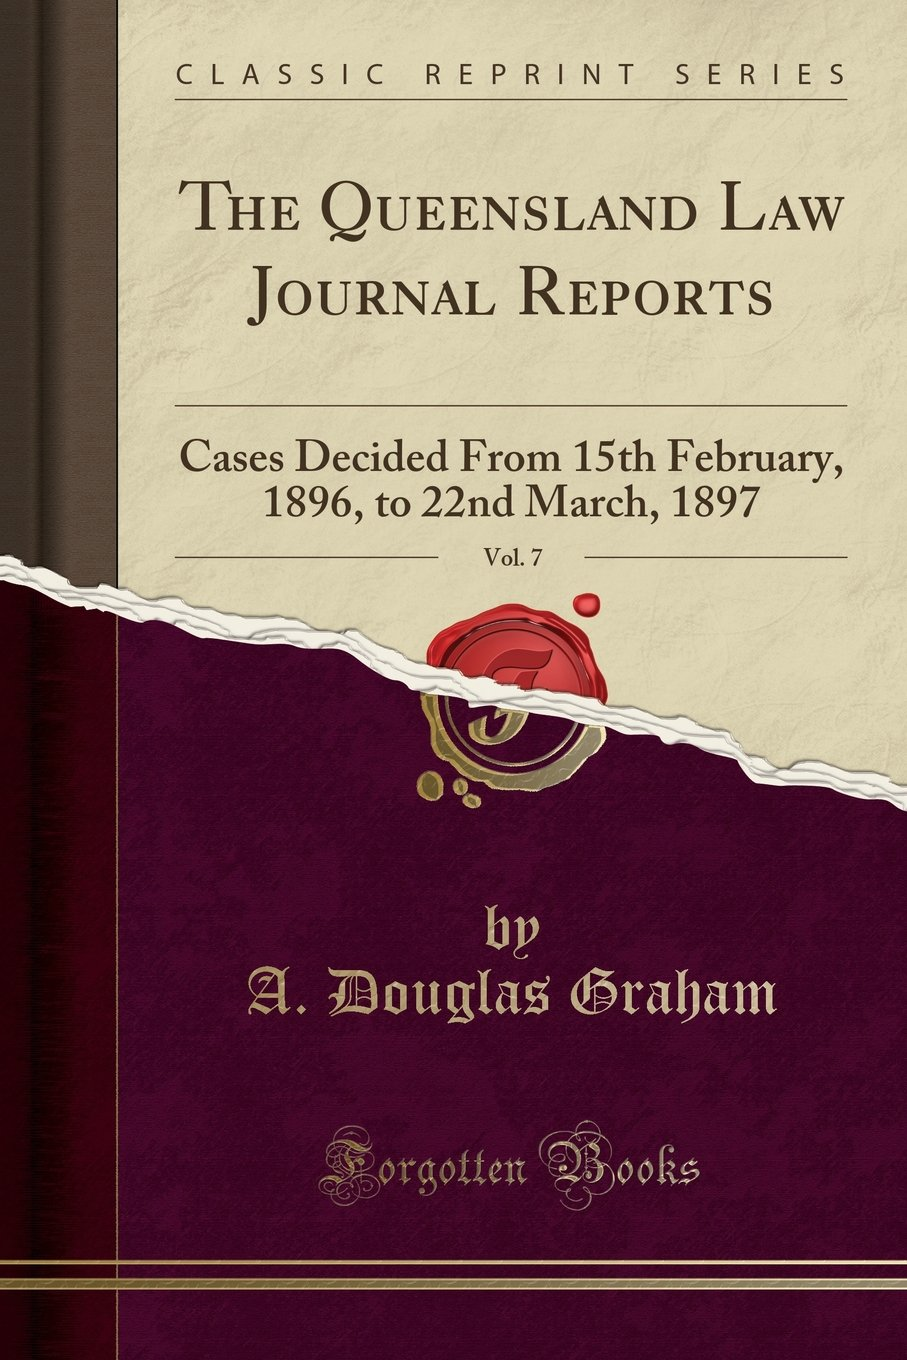 The Queensland Law Journal Reports, Vol. 7: Cases Decided From 15th February, 1896, to 22nd March, 1897 (Classic Reprint) PDF